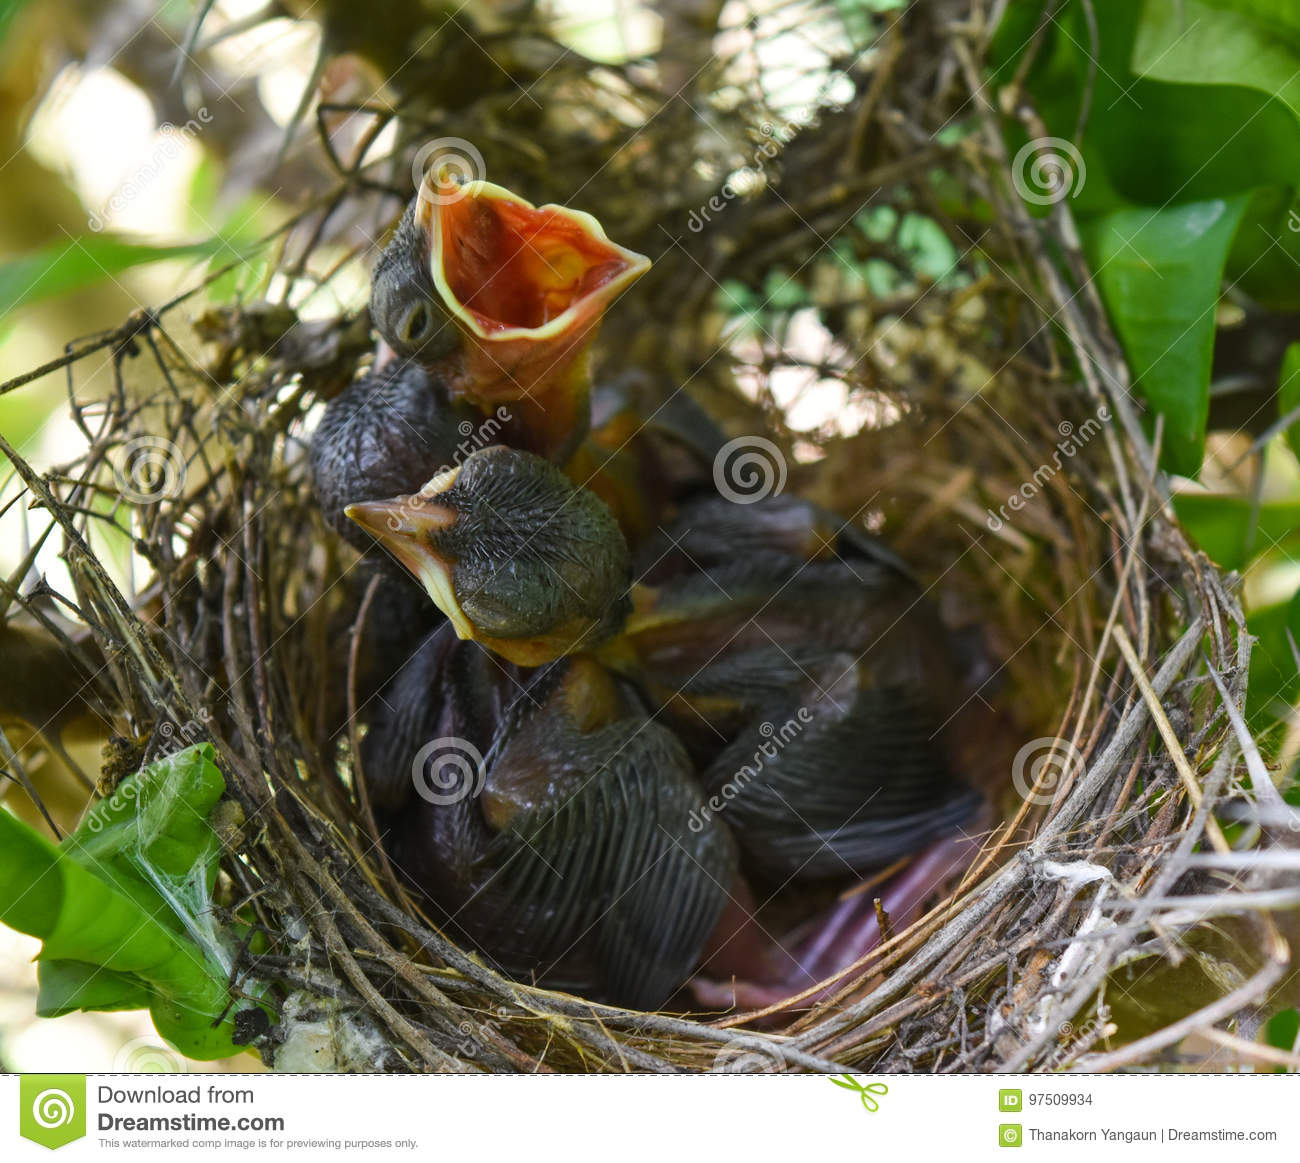 Three babies in the nest.